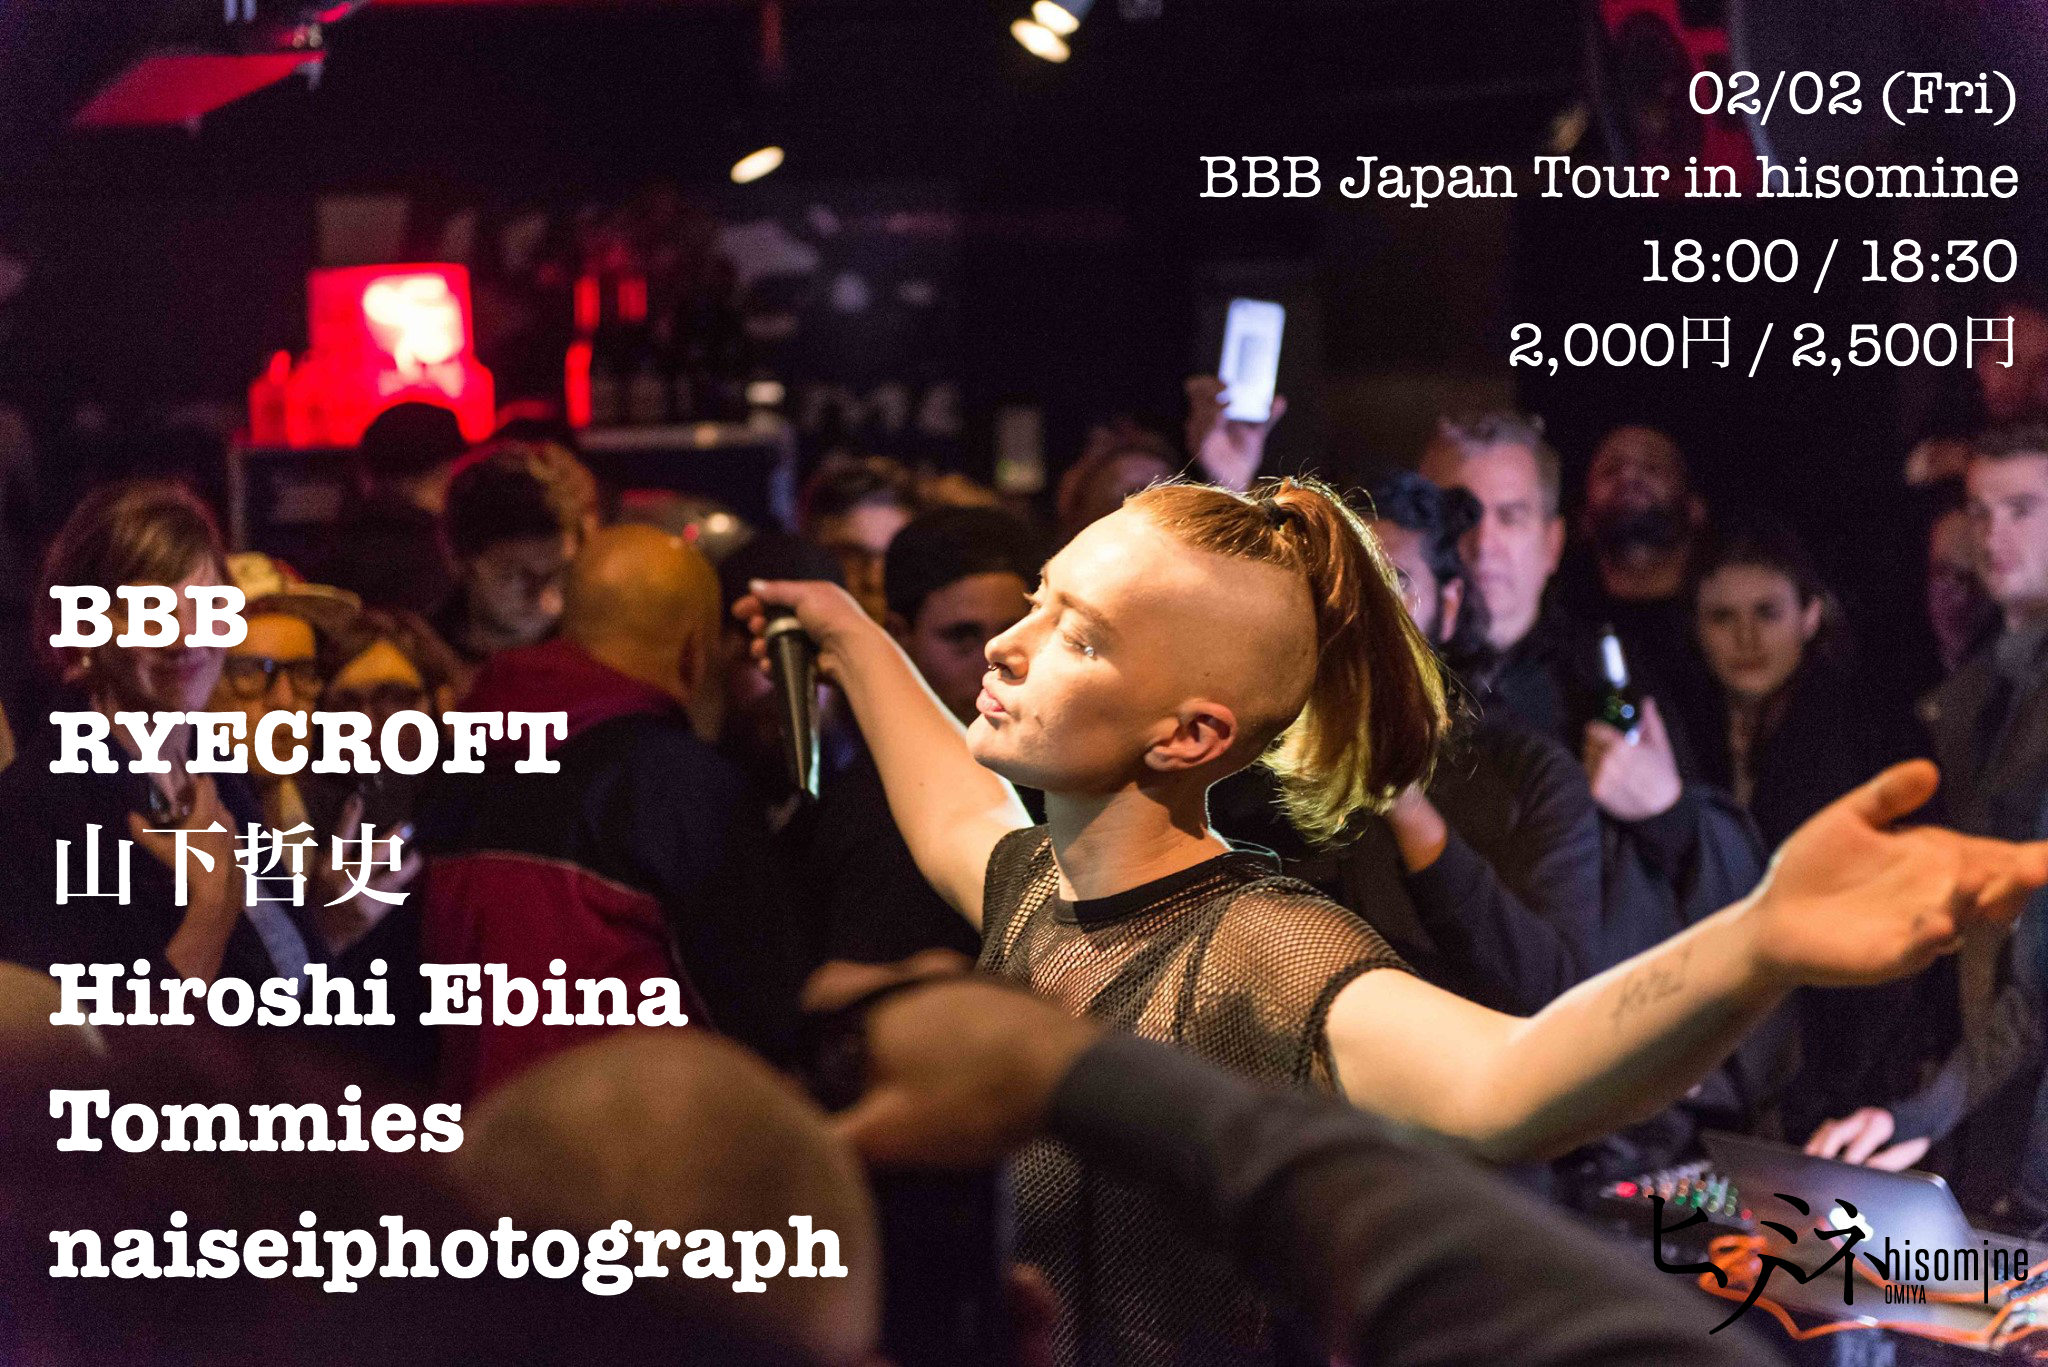 BBB Japan Tour in hisomine